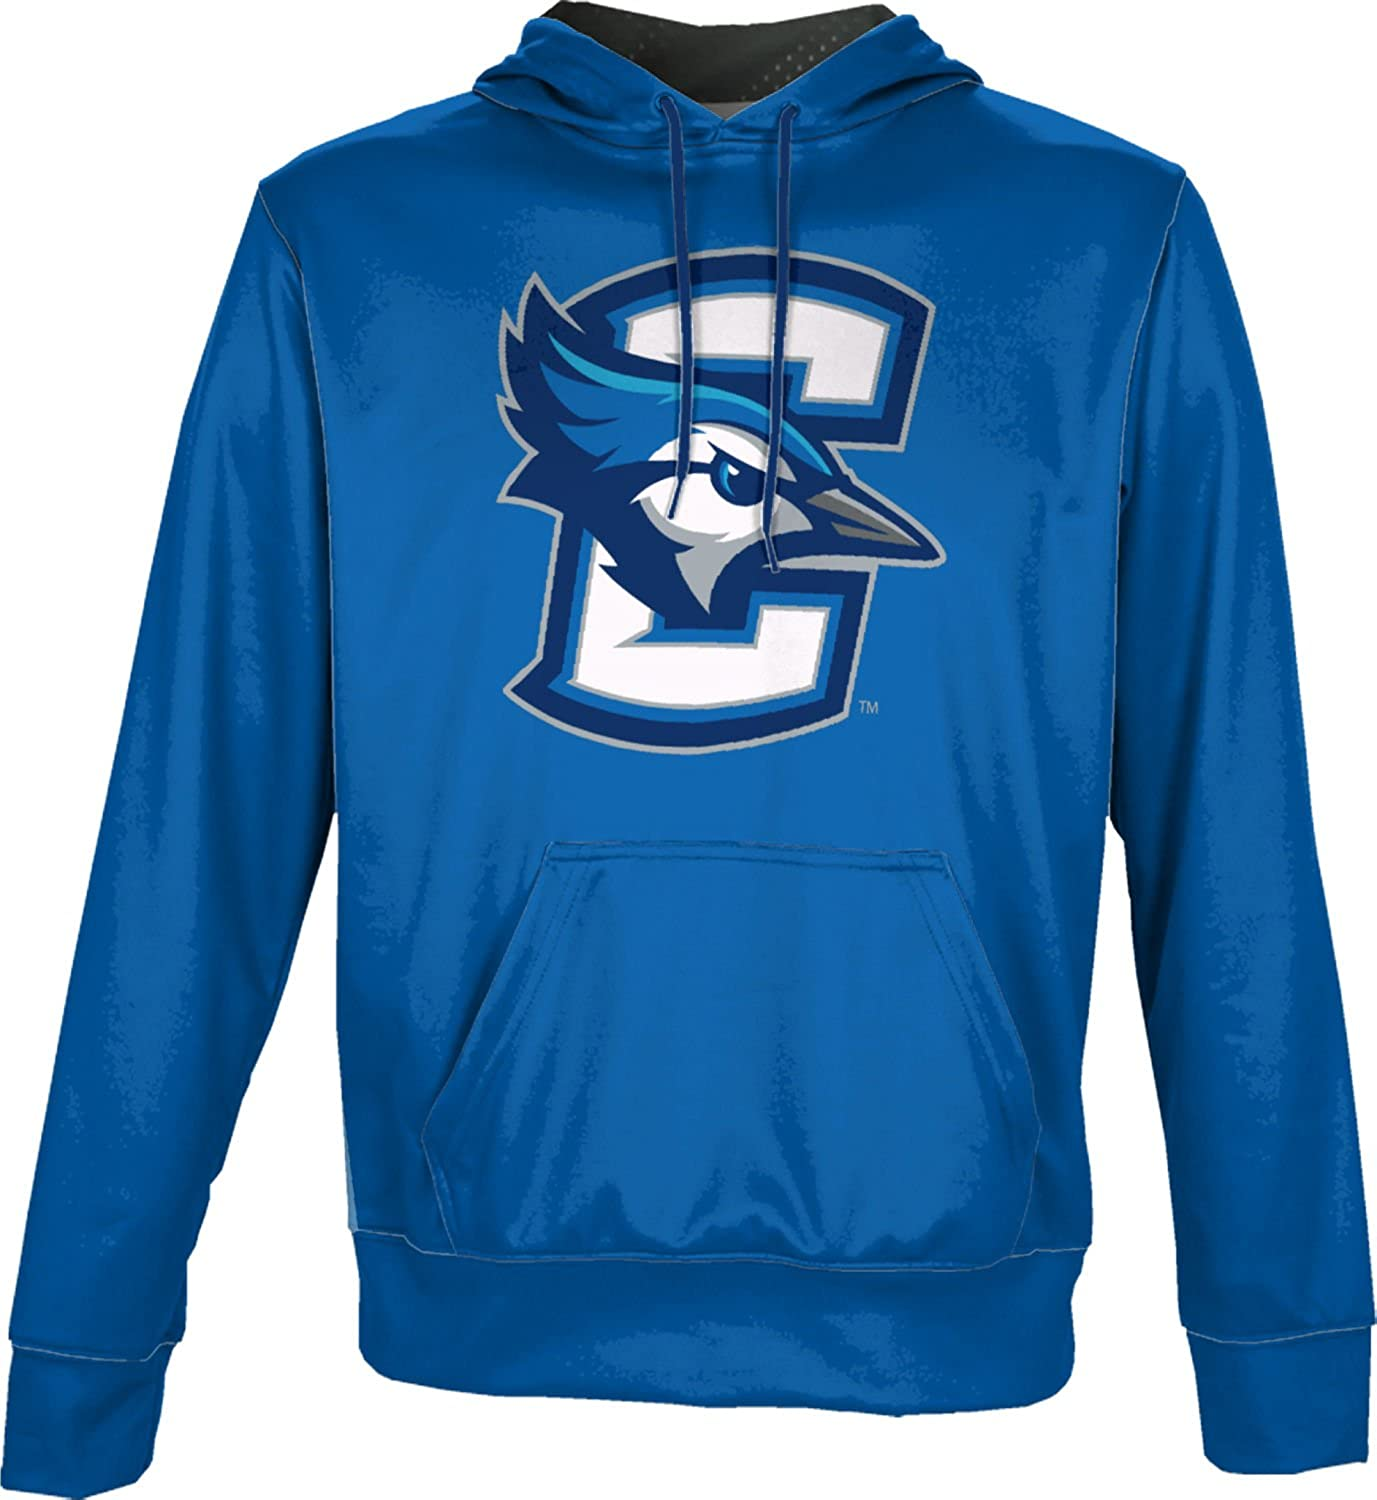 ProSphere Creighton University Boys Pullover Hoodie School Spirit Sweatshirt Secondskin